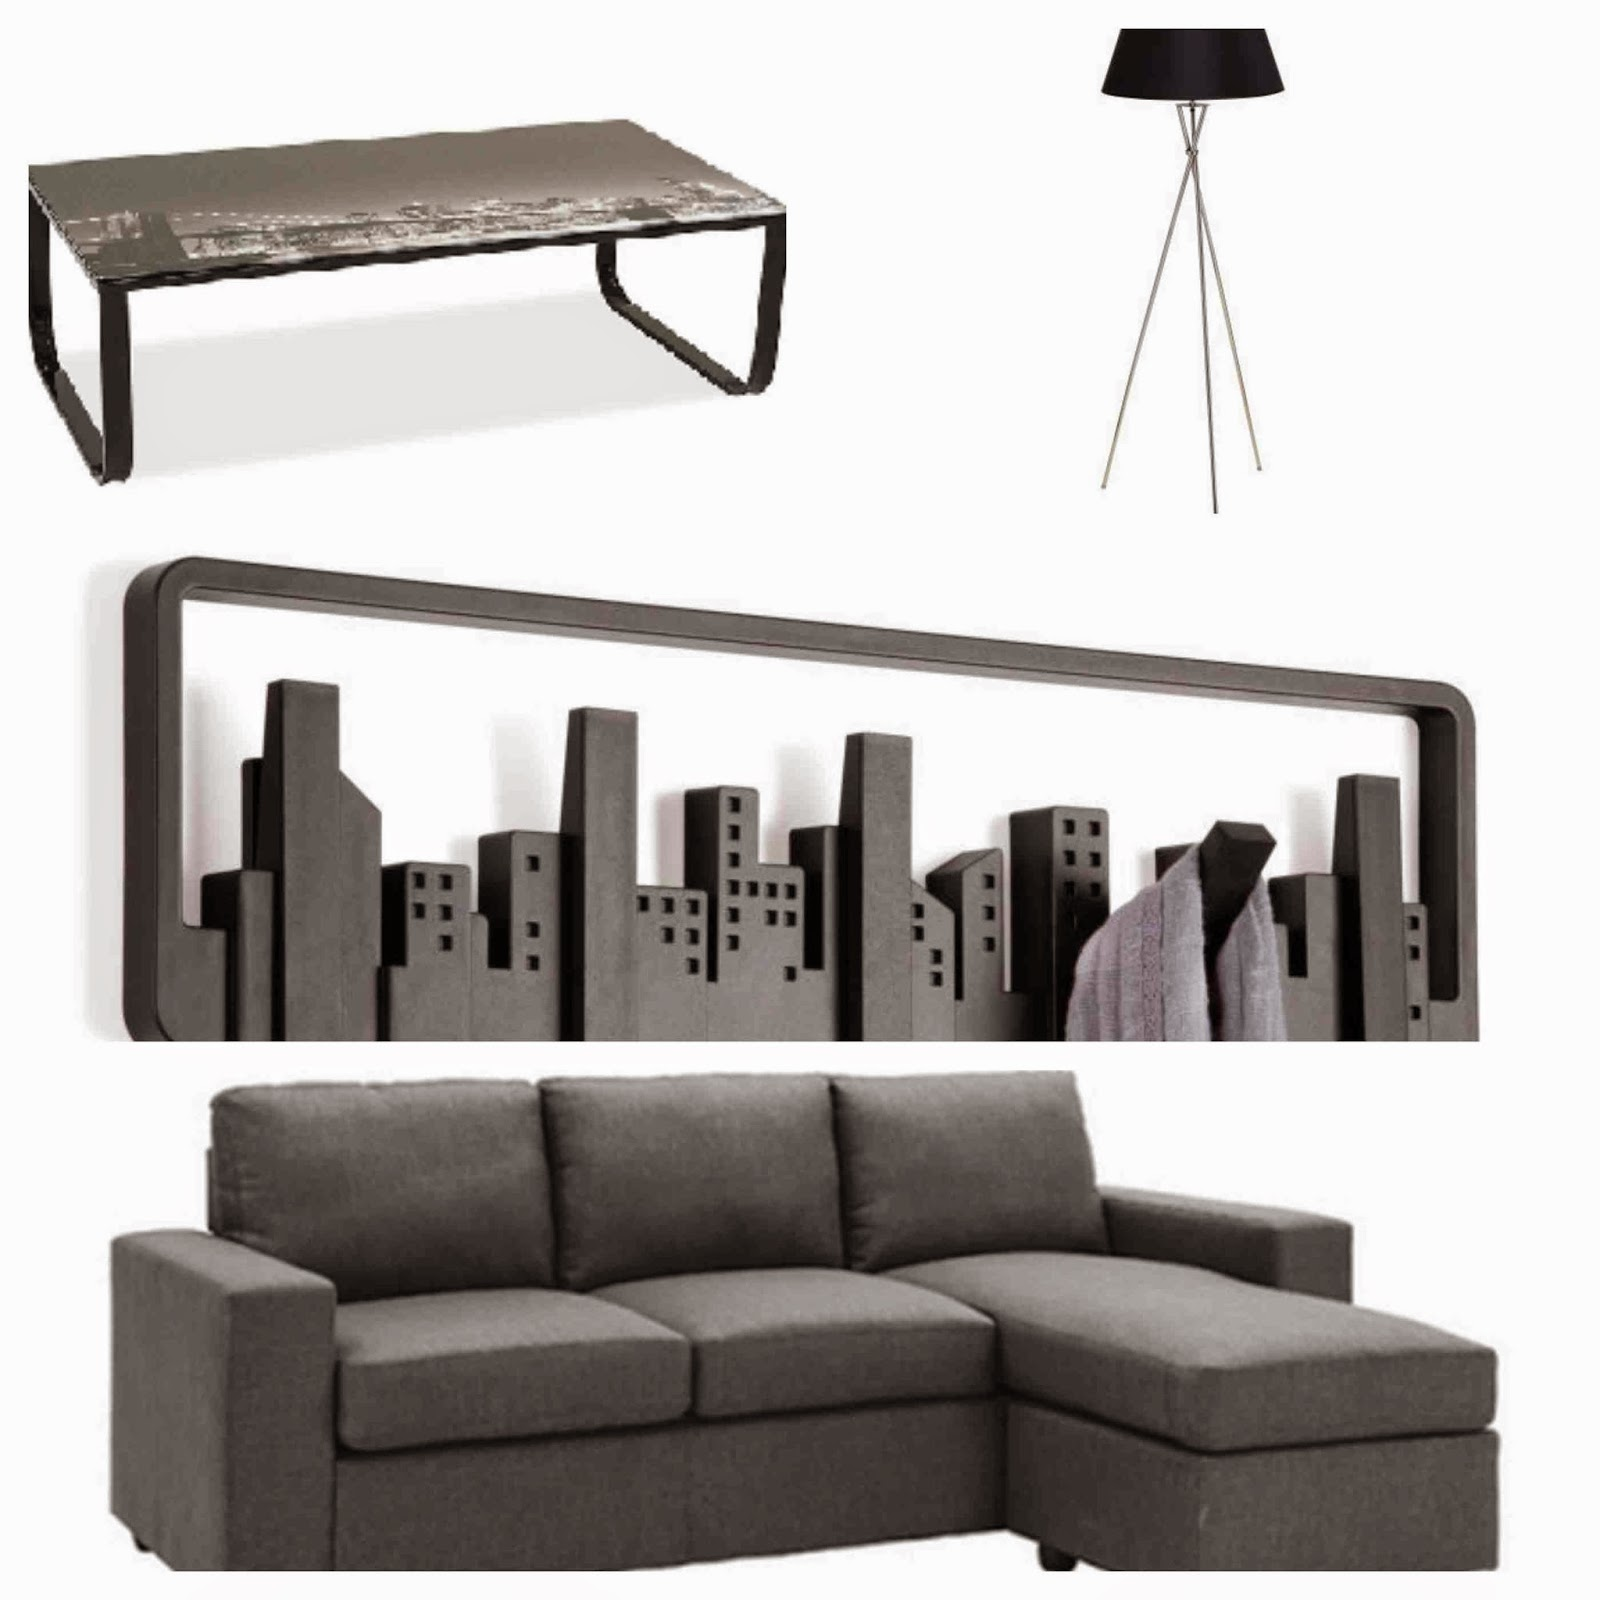 Coffee table metal legs glass top brooklyn modern grey sofa